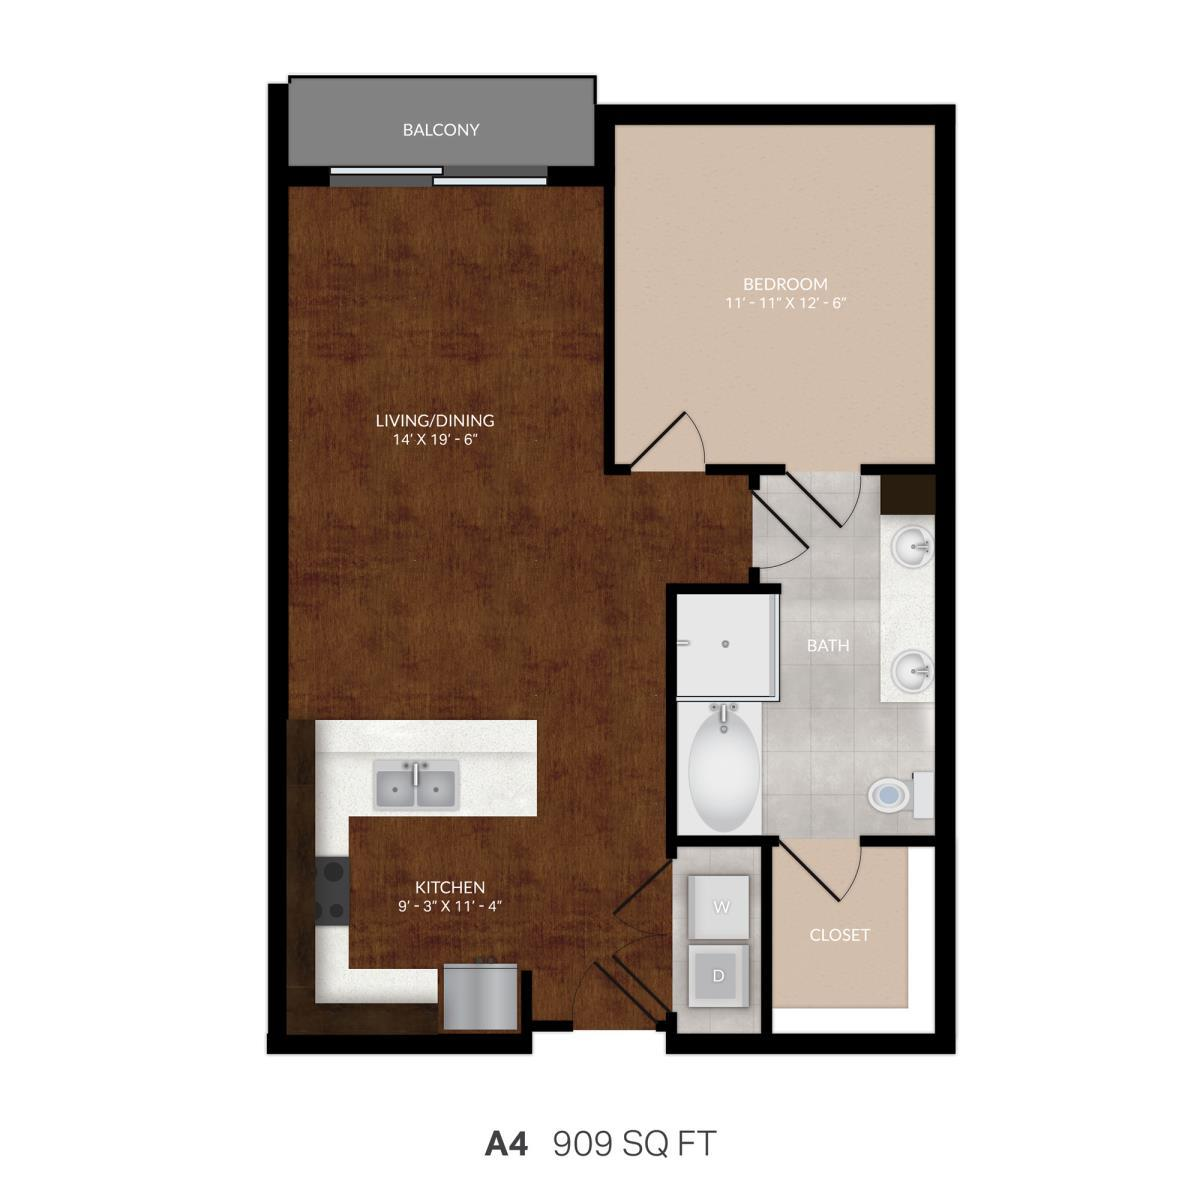 843 sq. ft. A4 floor plan